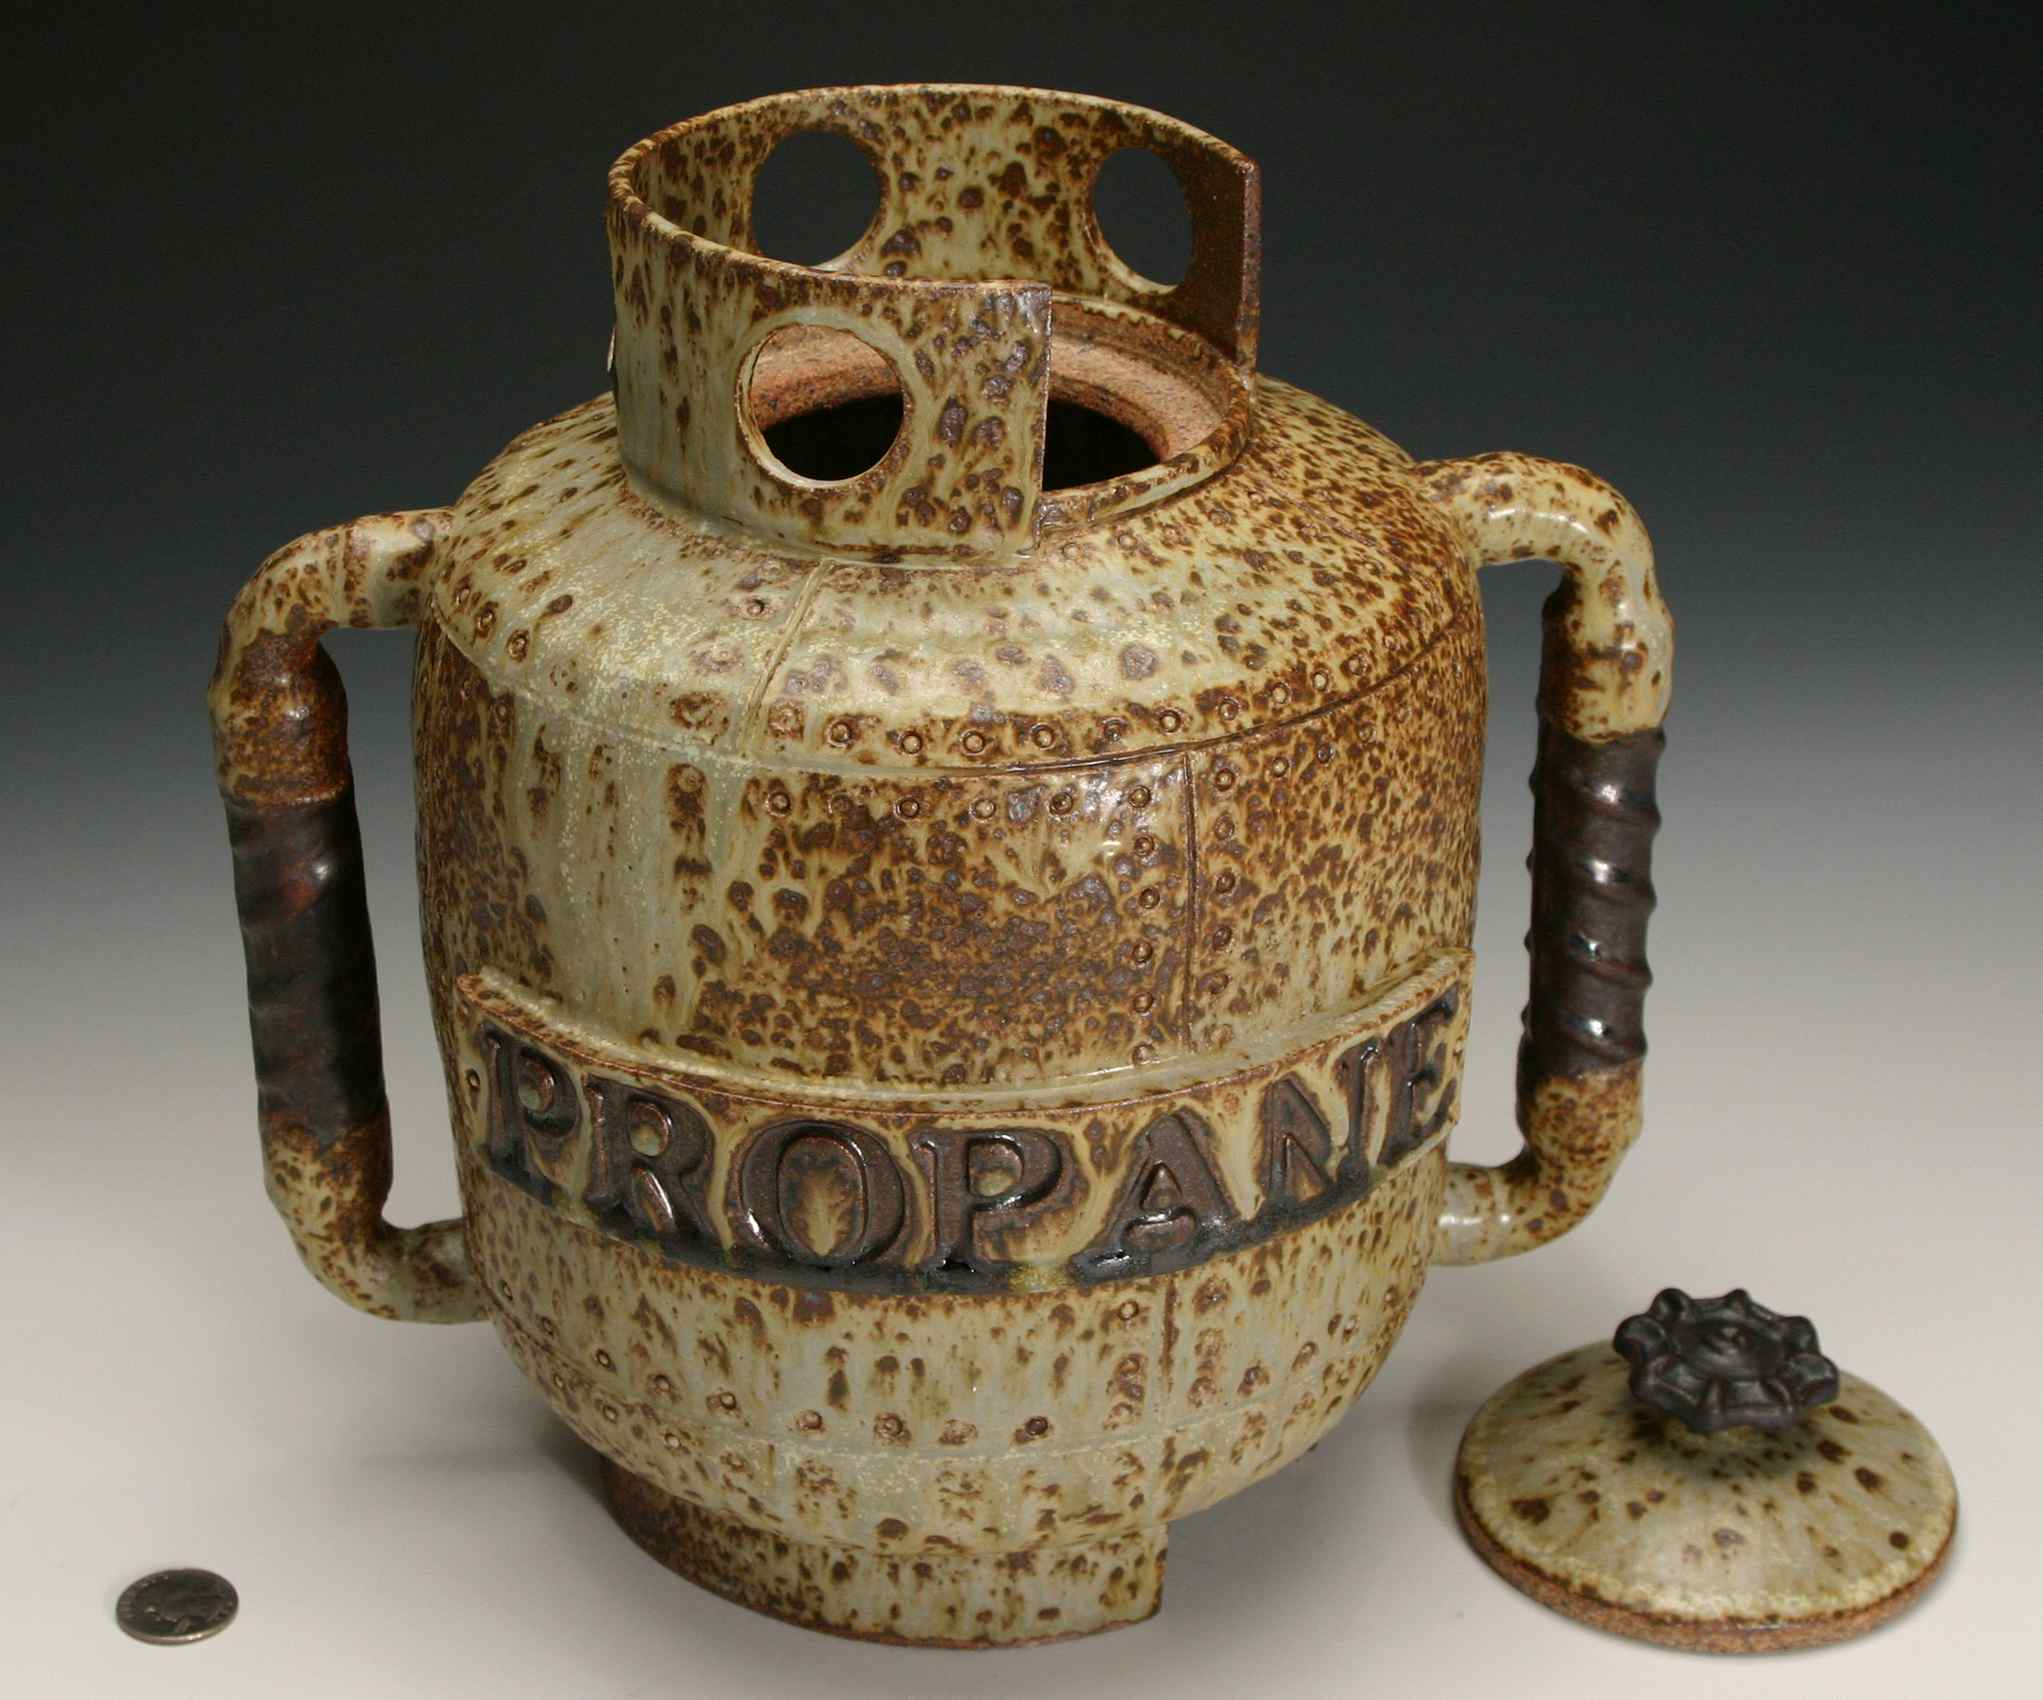 Perkins_J_Ceramics_PropaneC.jpg